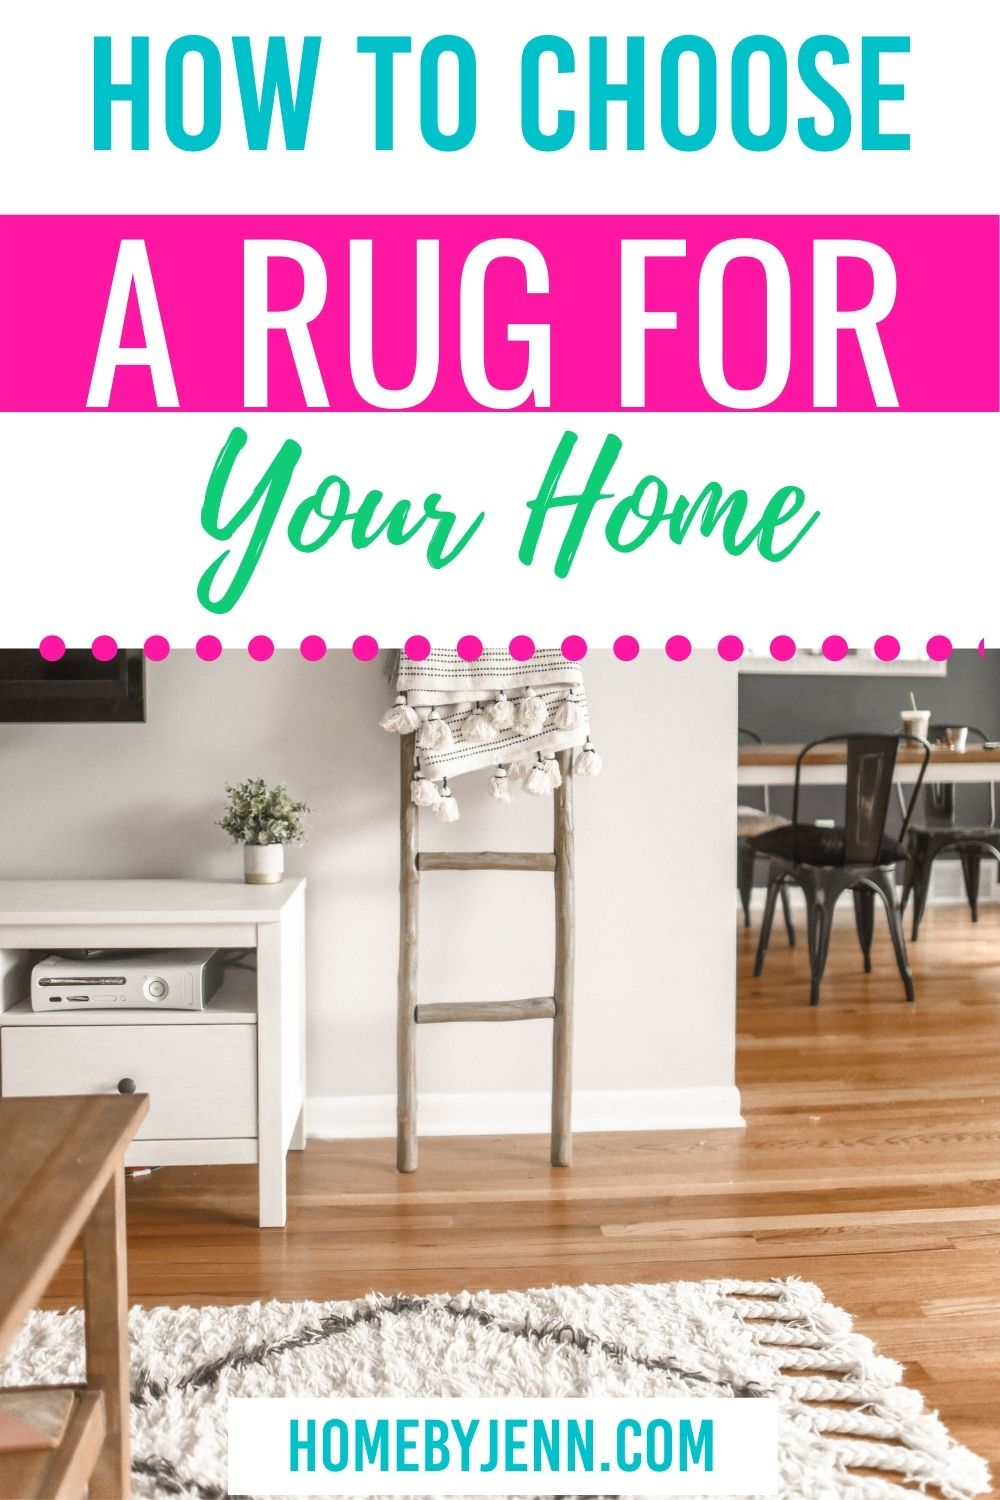 Choosing a rug for any room of your home can be quite overwhelming. I'm going to show you how to choose a rug. I'm going to cover questions like what size, color, and style of rug to make any room in your home complete. via @homebyjenn